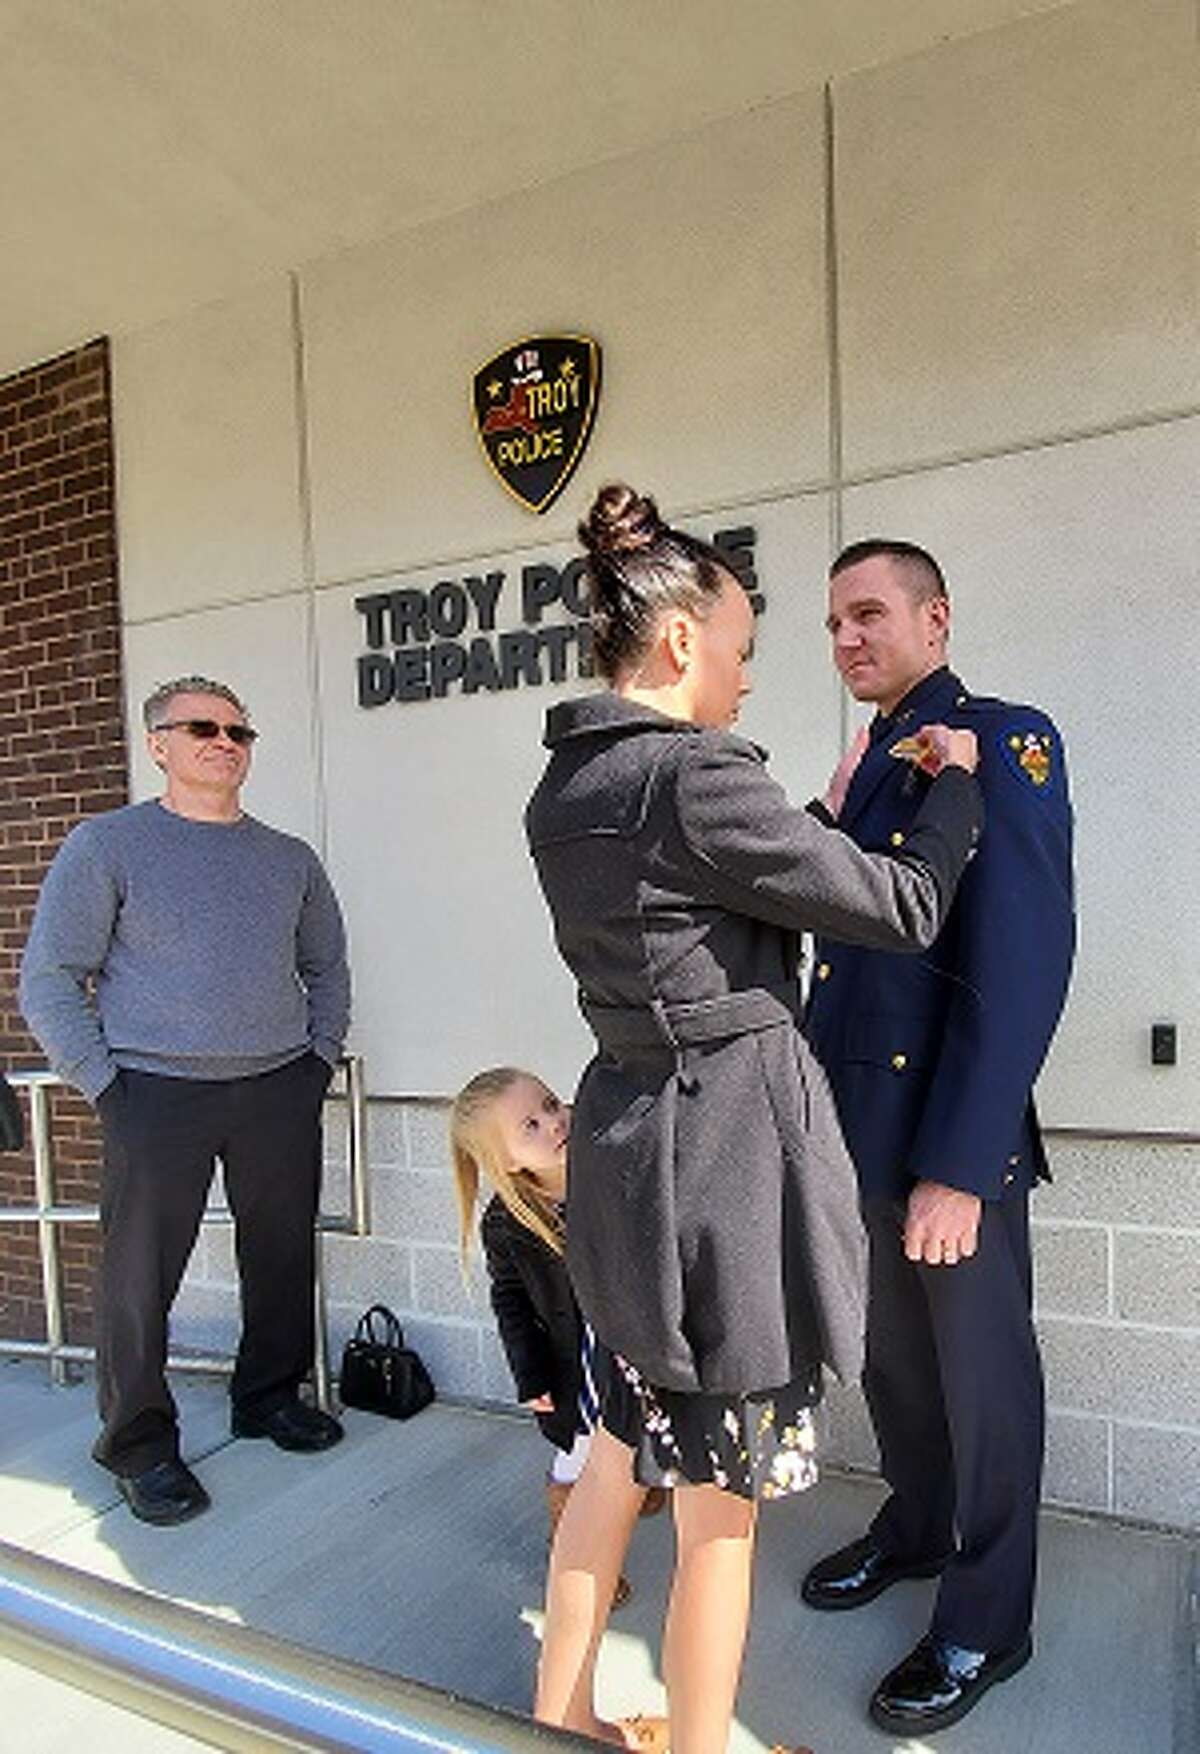 On Wednesday, March 18, in an outdoor ceremony, Troy Police Officer Christopher Rasmussen was promoted to the rank of sergeant with the oath administered by Mayor Patrick Madden. Rasmussen's family attended, including his wife Lindsay, daughter Natalie and his parents. Many other department members looked on from afar and joined in a round of applause. Rasmussen has been a member of the department since July 2007 and has been assigned to the Patrol Division. He is also a field training officer and has received a number of training certifications throughout his career.